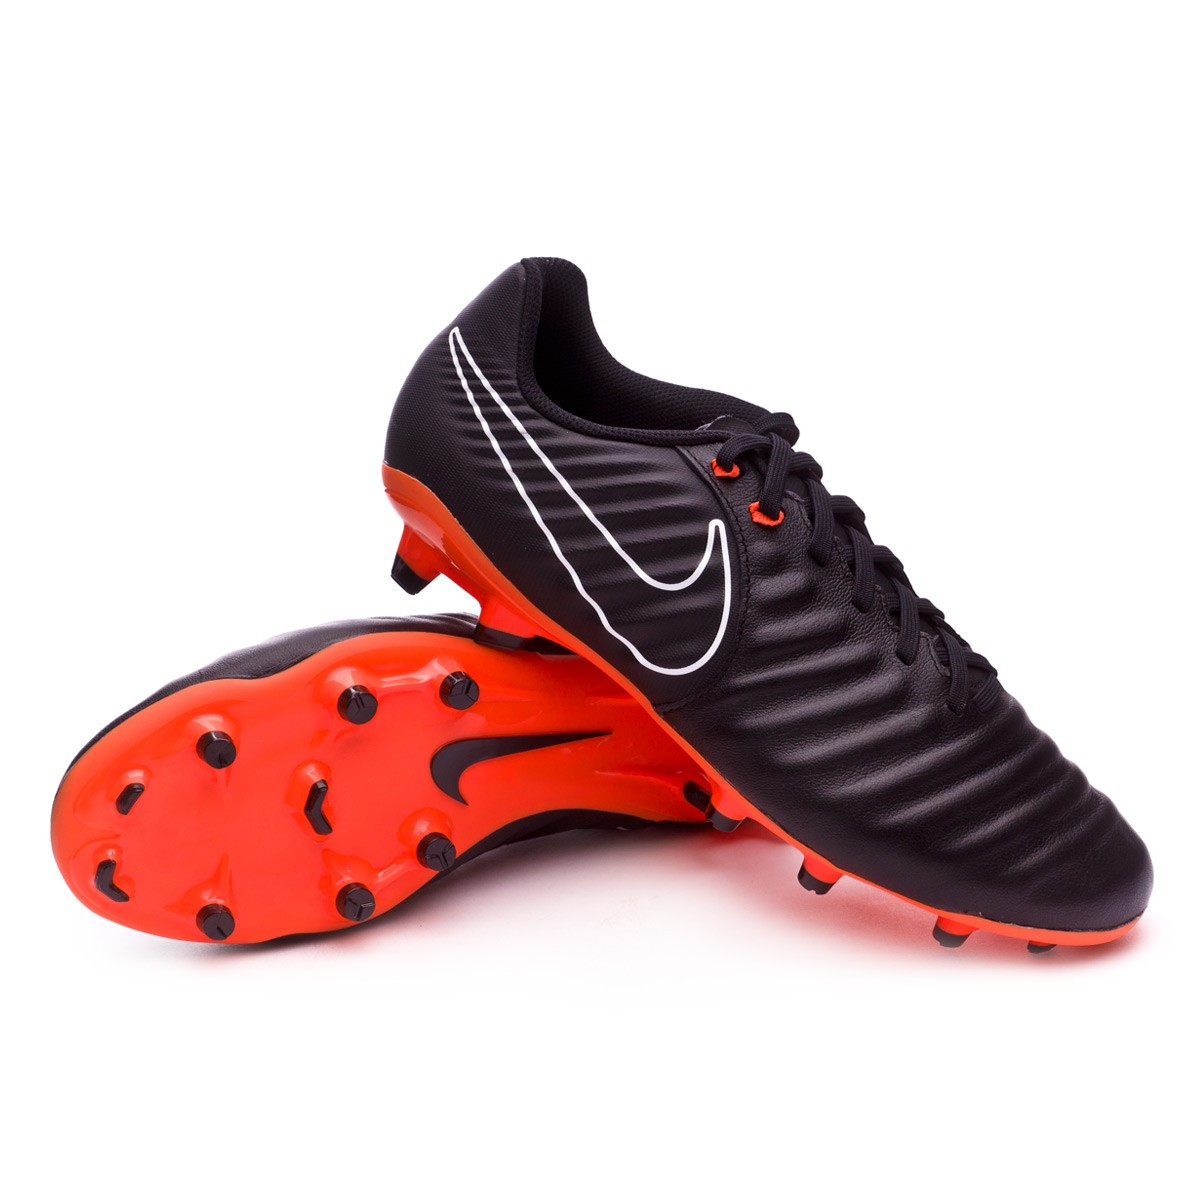 4faf524d7d Football Boots Nike Tiempo Legend VII Academy FG Black-Total orange-White -  Tienda de fútbol Fútbol Emotion